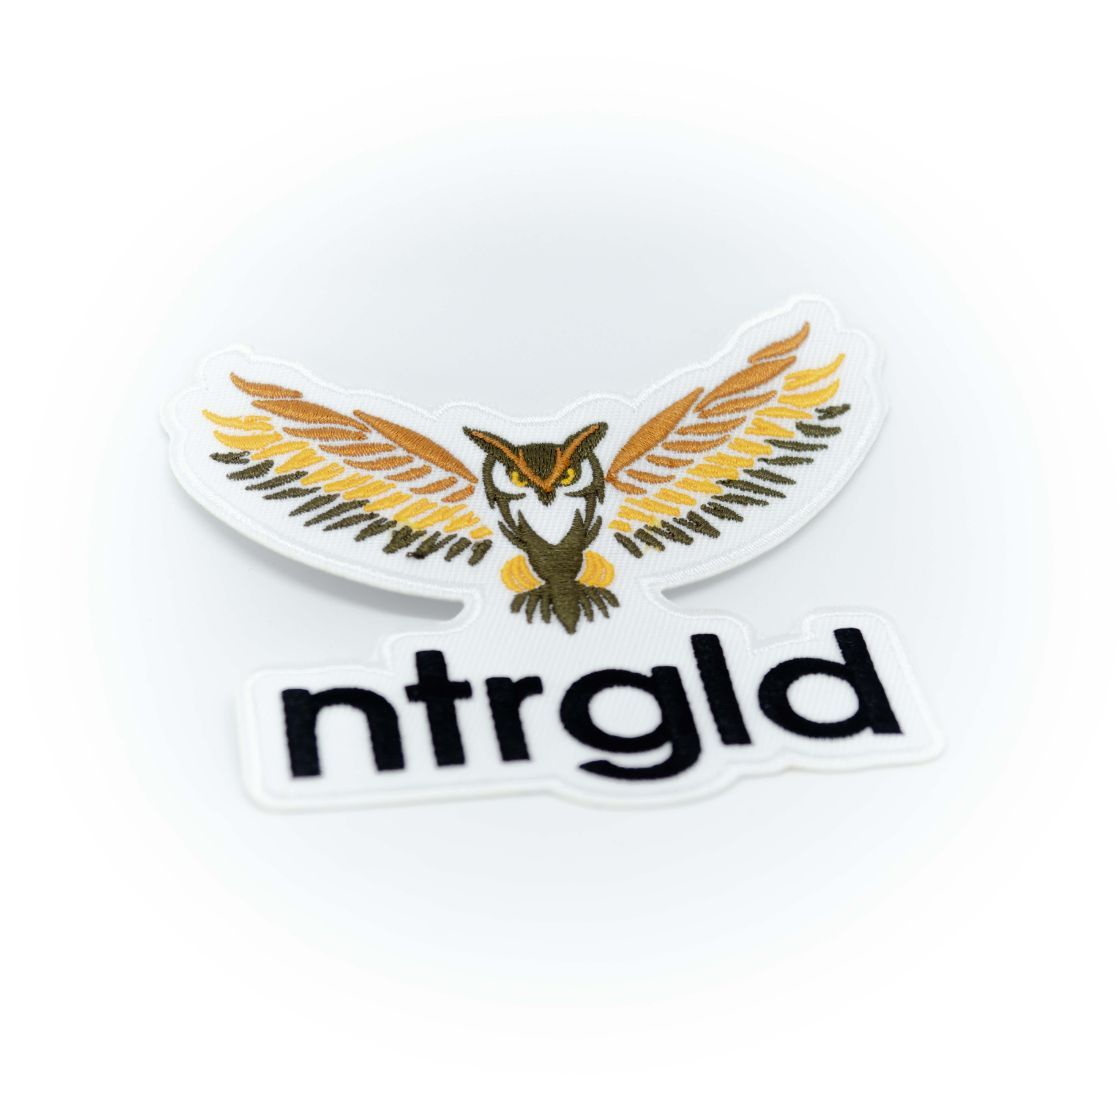 Neter Gold Brand Patches - Neter Gold - NTRGLD Great Horned Owl - 4 * 3.5 in - NTRGLD